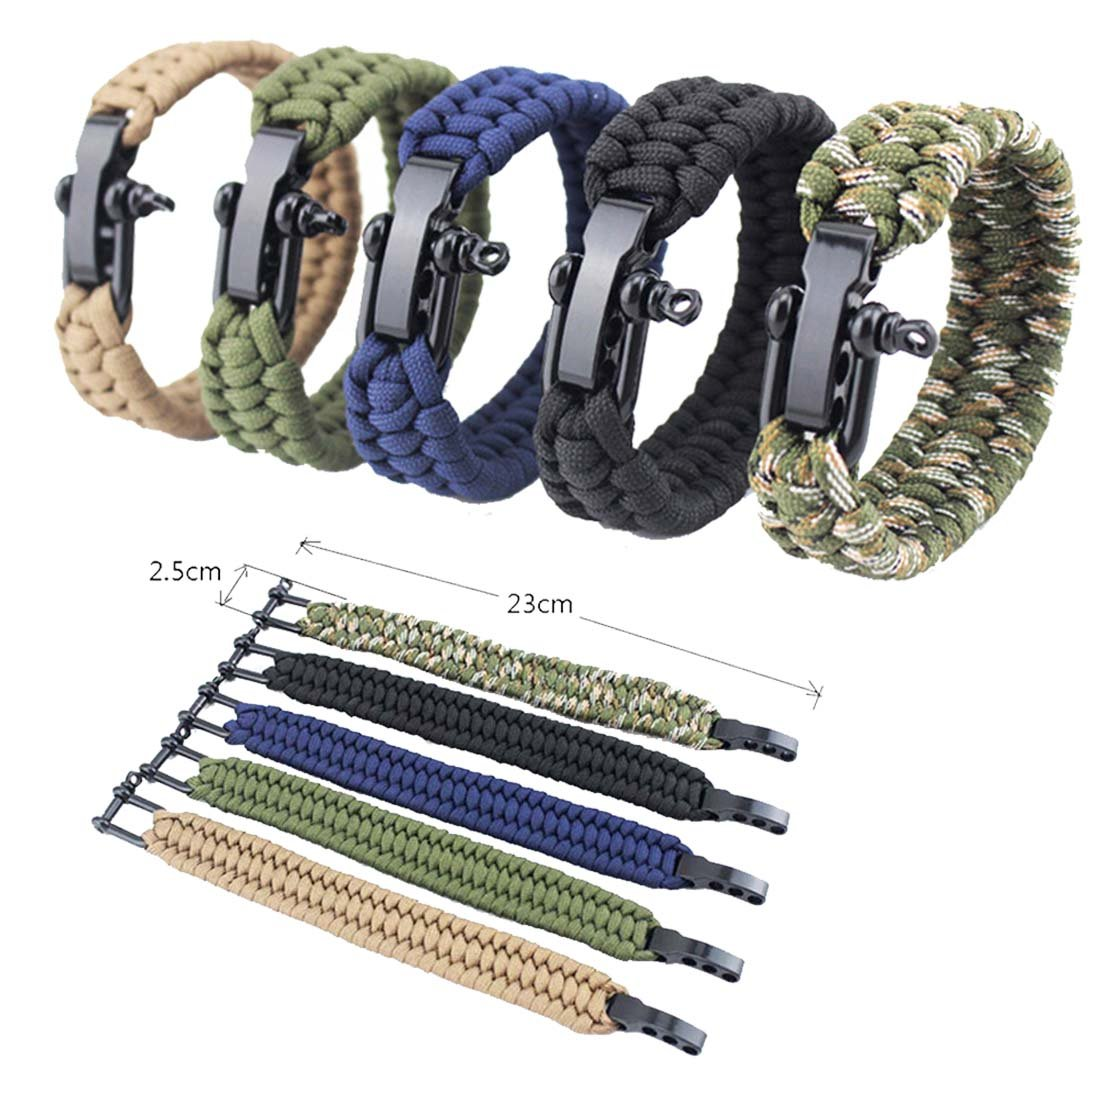 JMKZone Outdoor Paracord Survival Bracelet with Adjustable Stainless Steel Black Shackle for Hunting Camping Hiking(5 Pack:Black, Green, Blue, Brown, Camouflage)